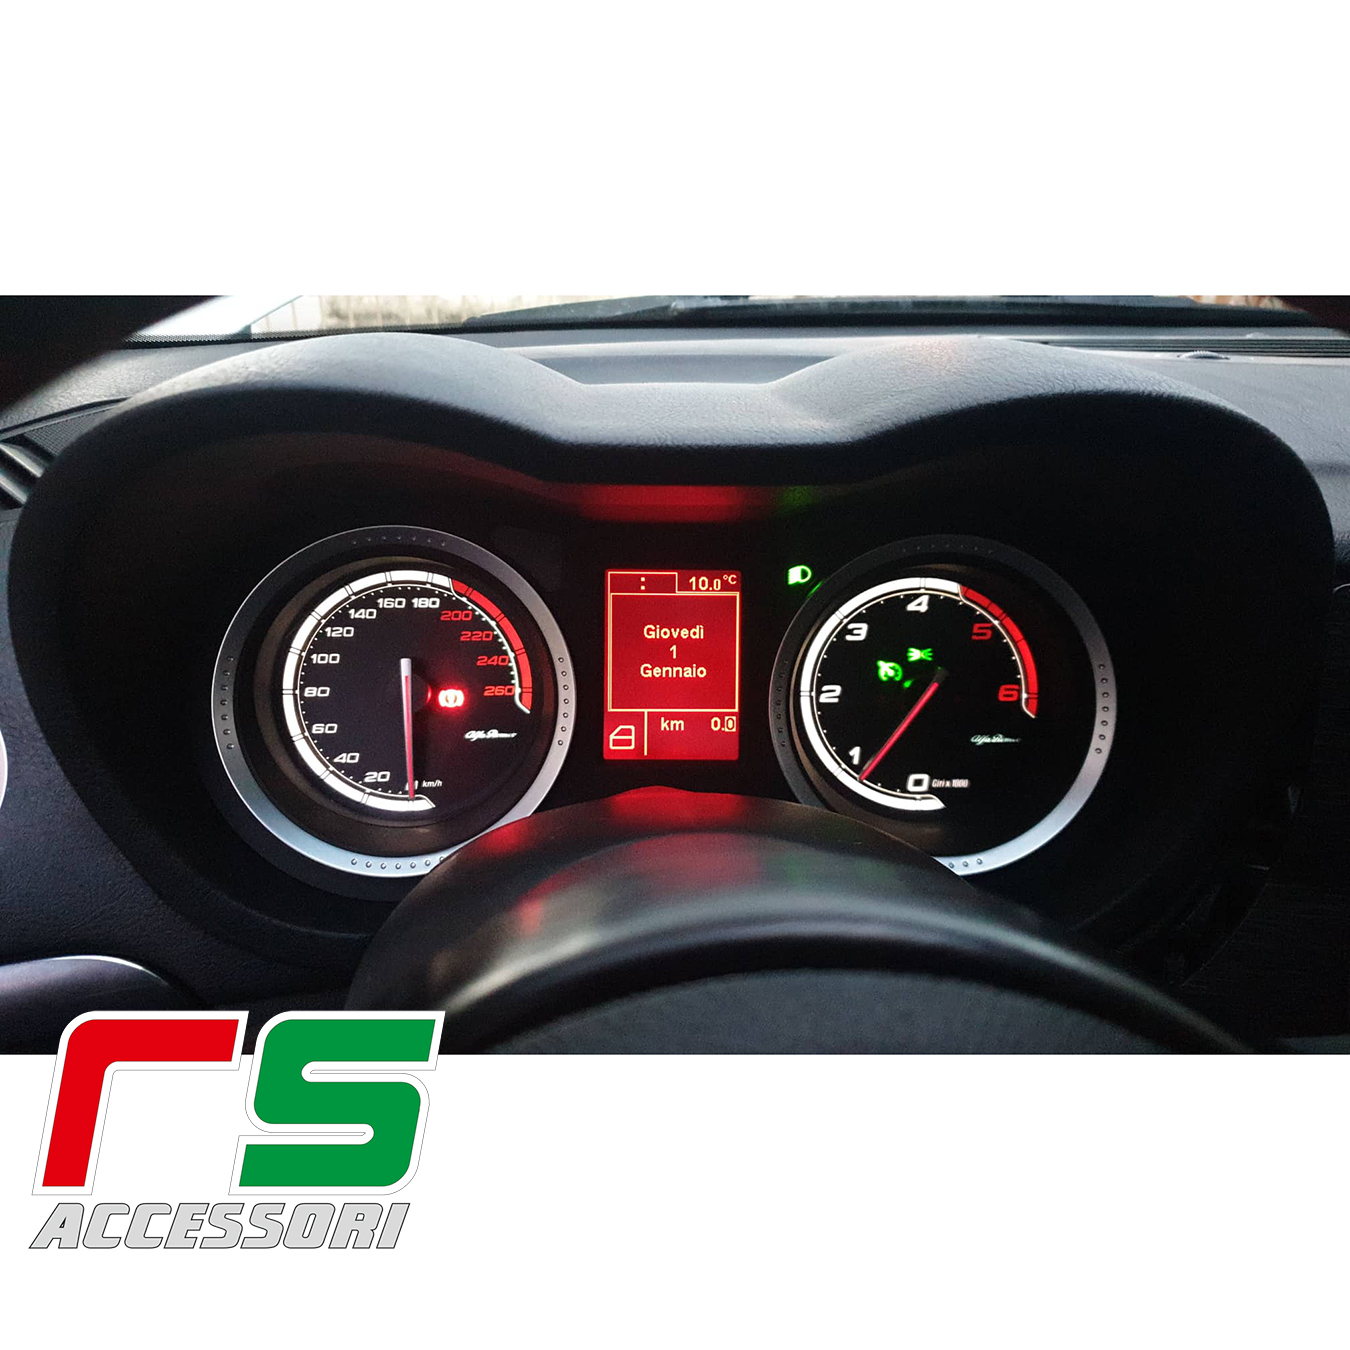 customized instrumentation evo Alfa Romeo 159 jtdm